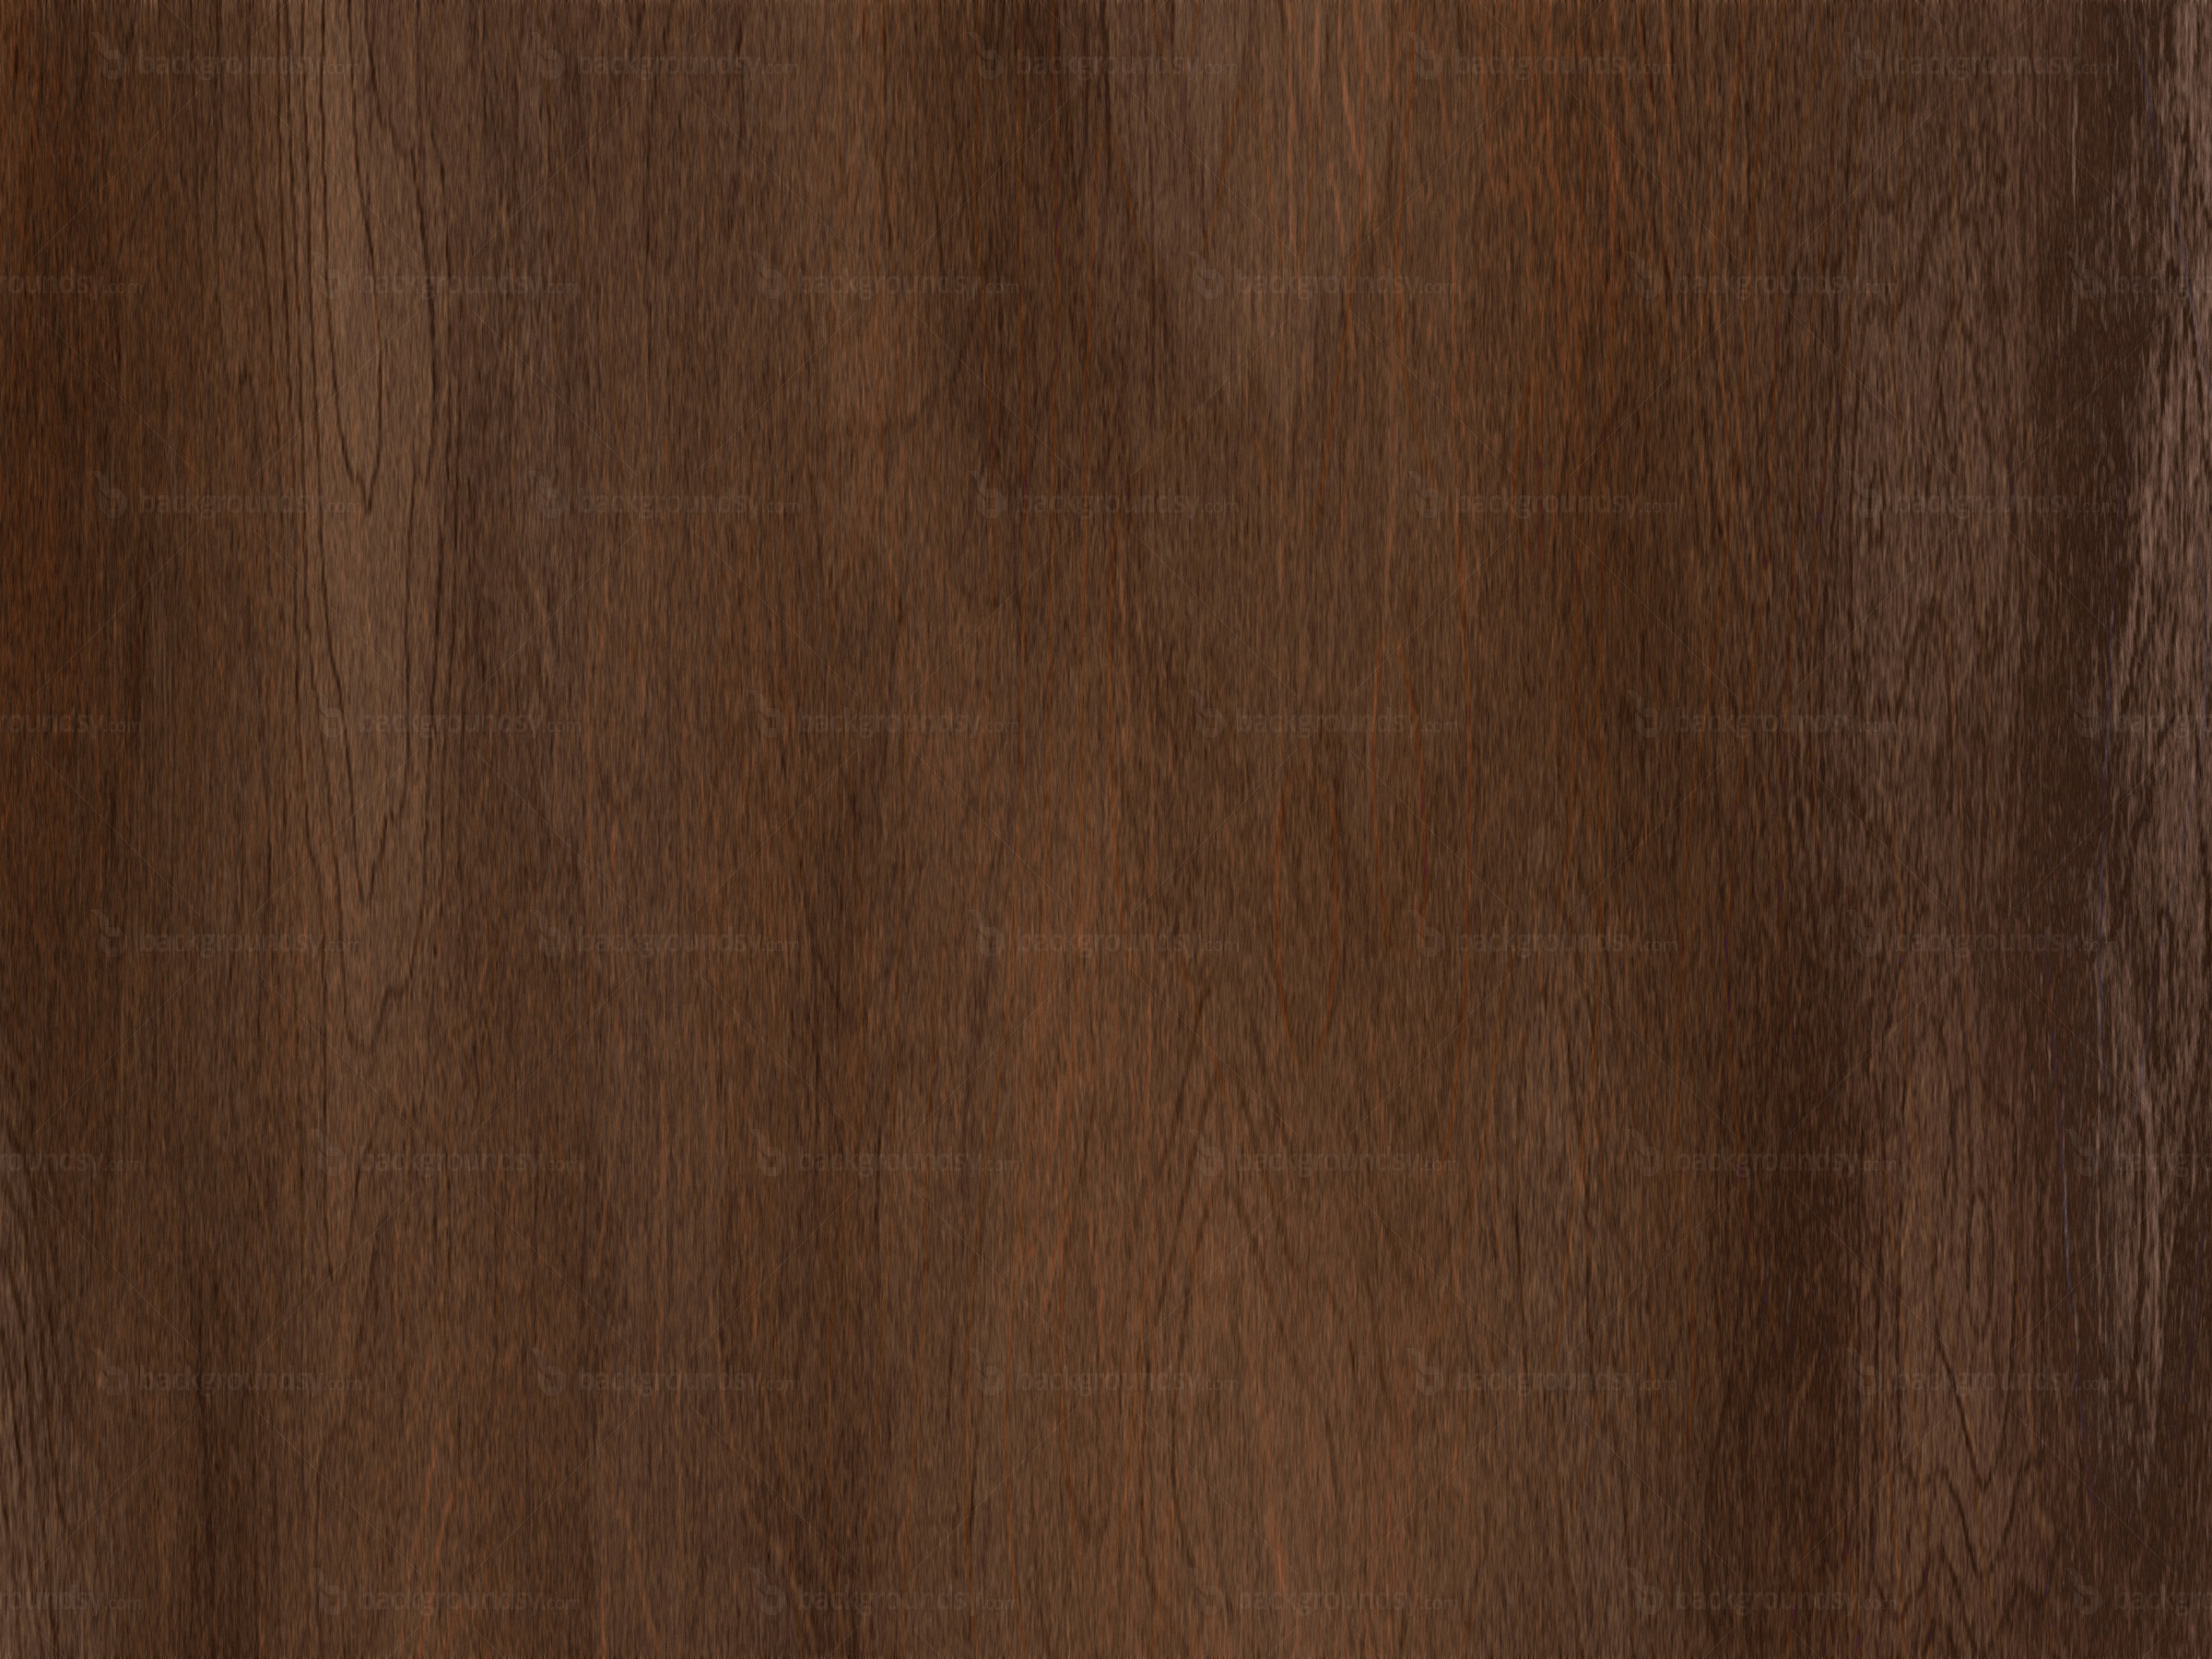 Dark wood texture | Backgroundsy.com